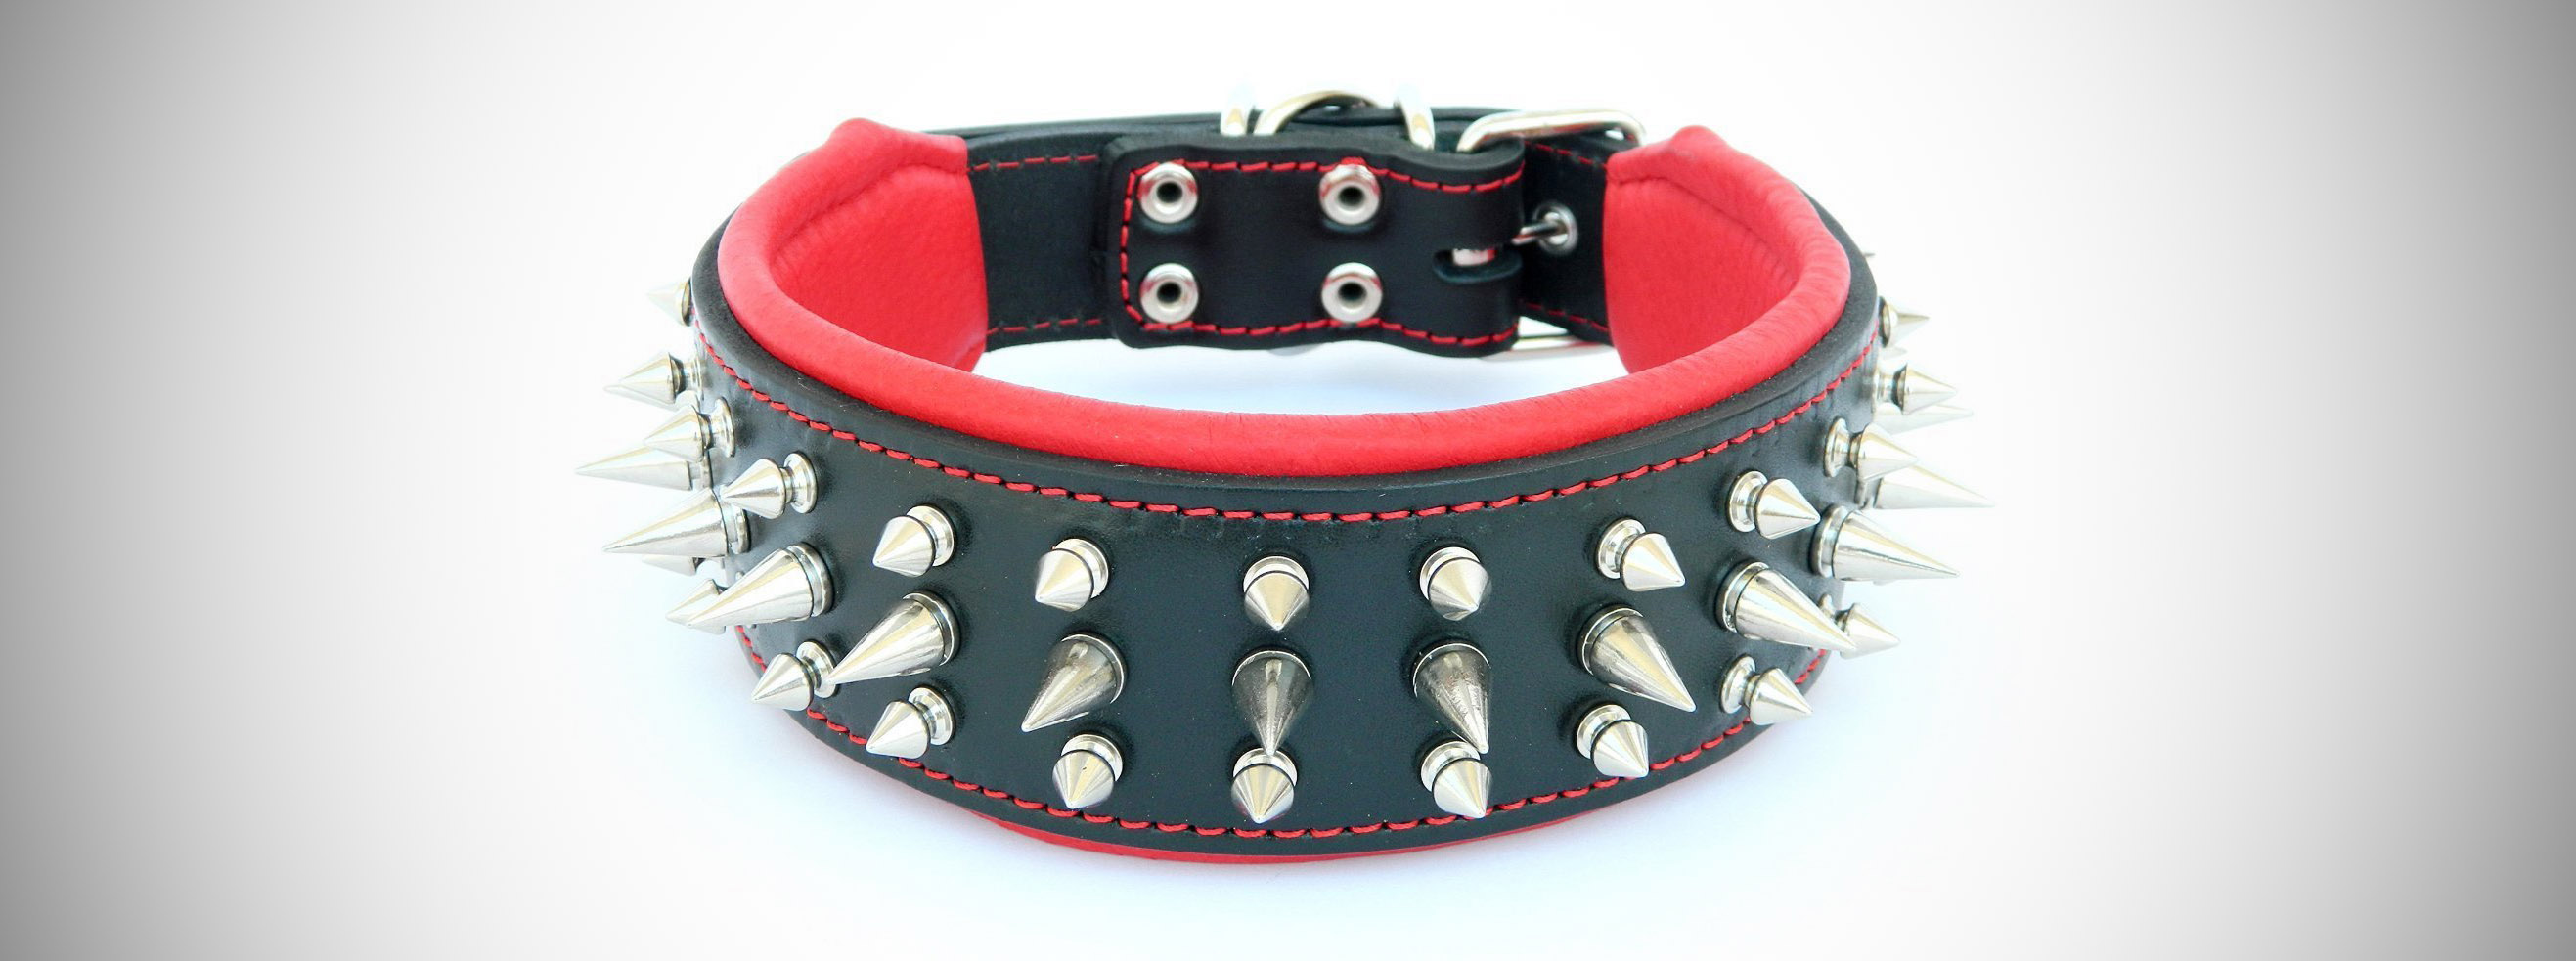 Unchewable Dog Collar